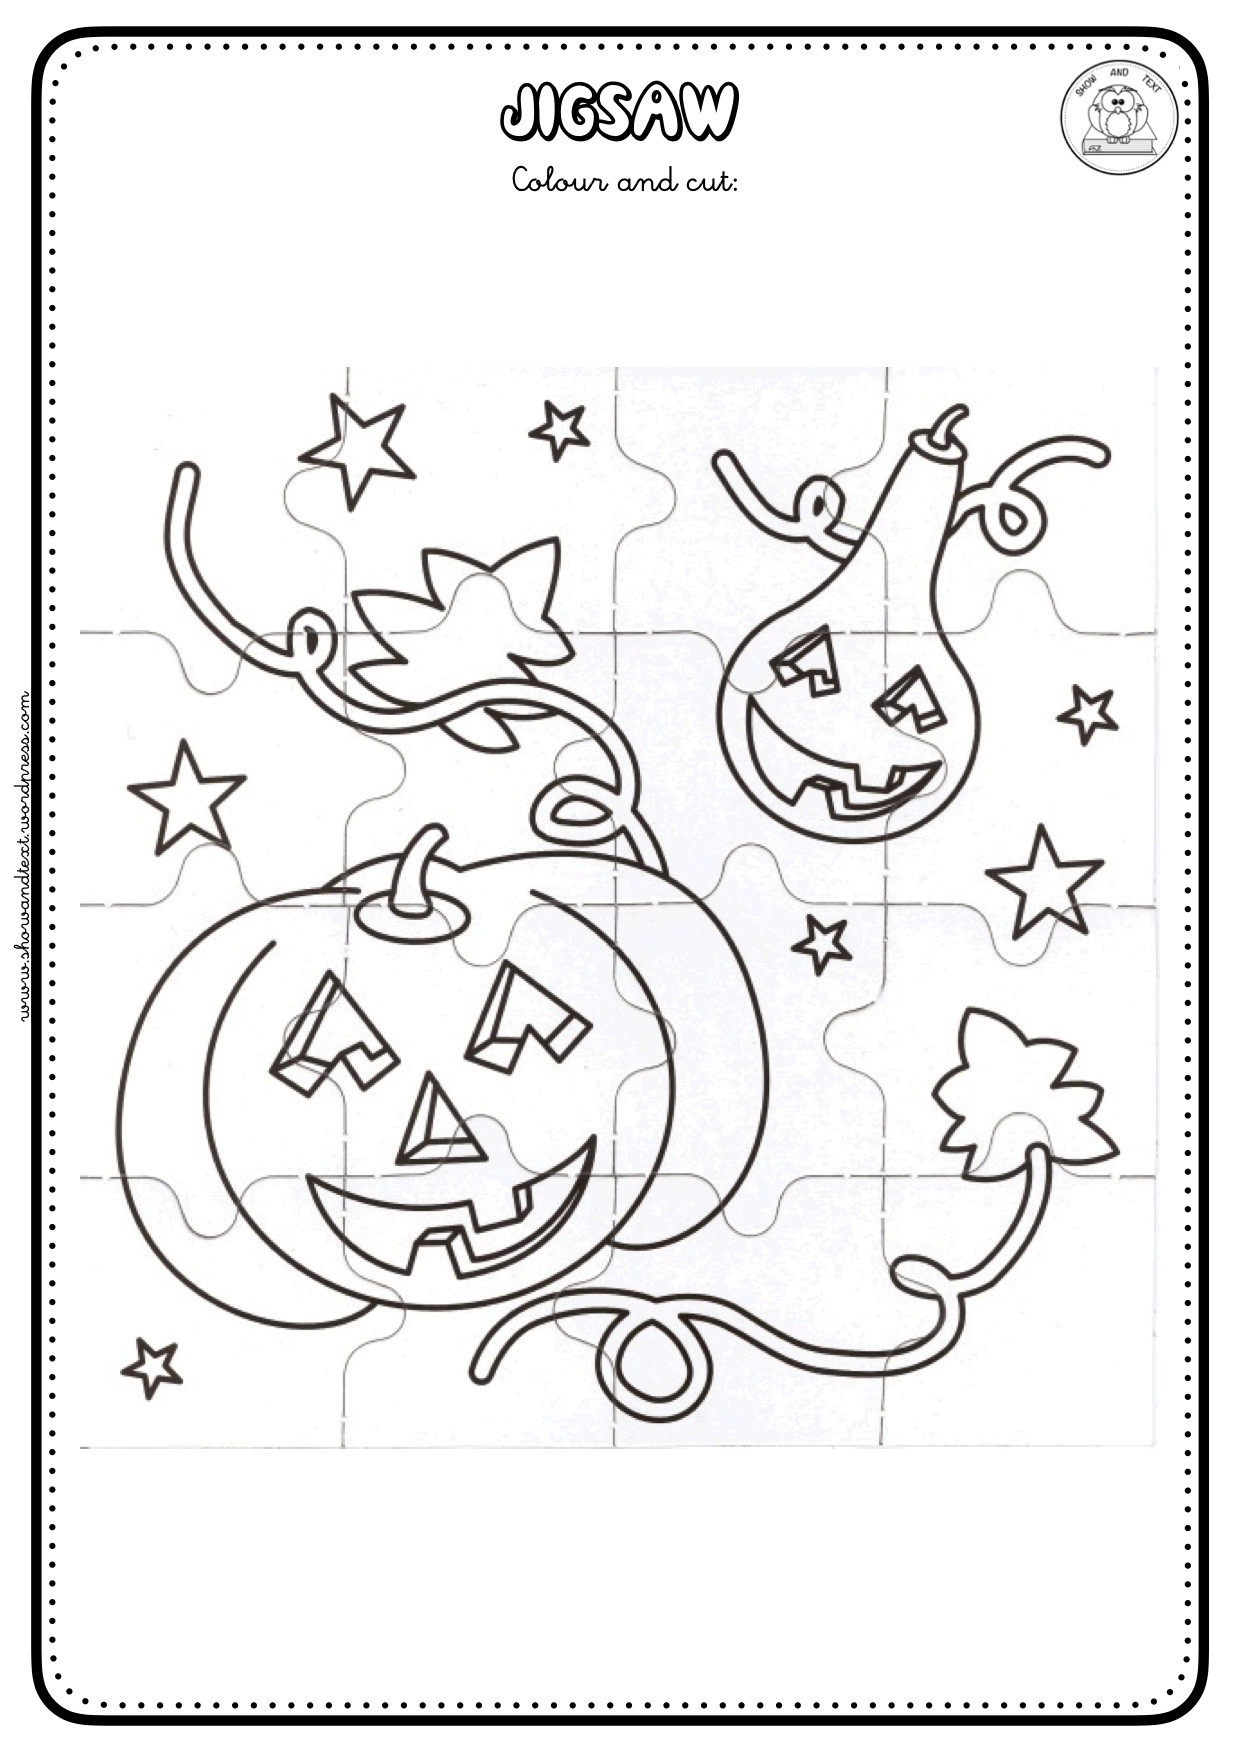 Pronoun Worksheets for 2nd Grade Halloween Show and Text Pronoun Worksheets Blog My Math